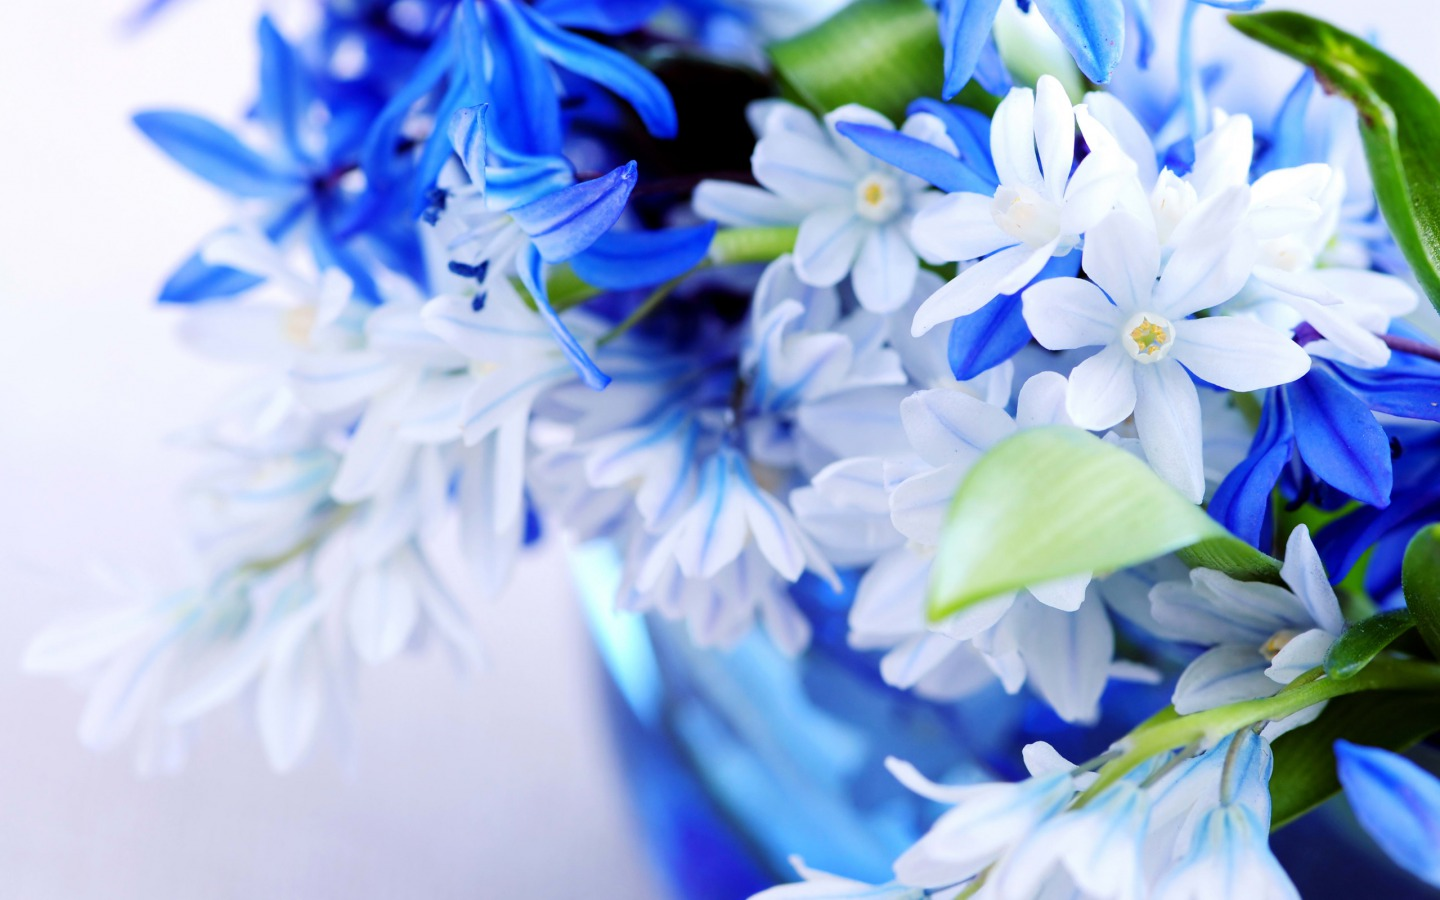 Flowers Images White Blue Flowers Hd Wallpaper And Background